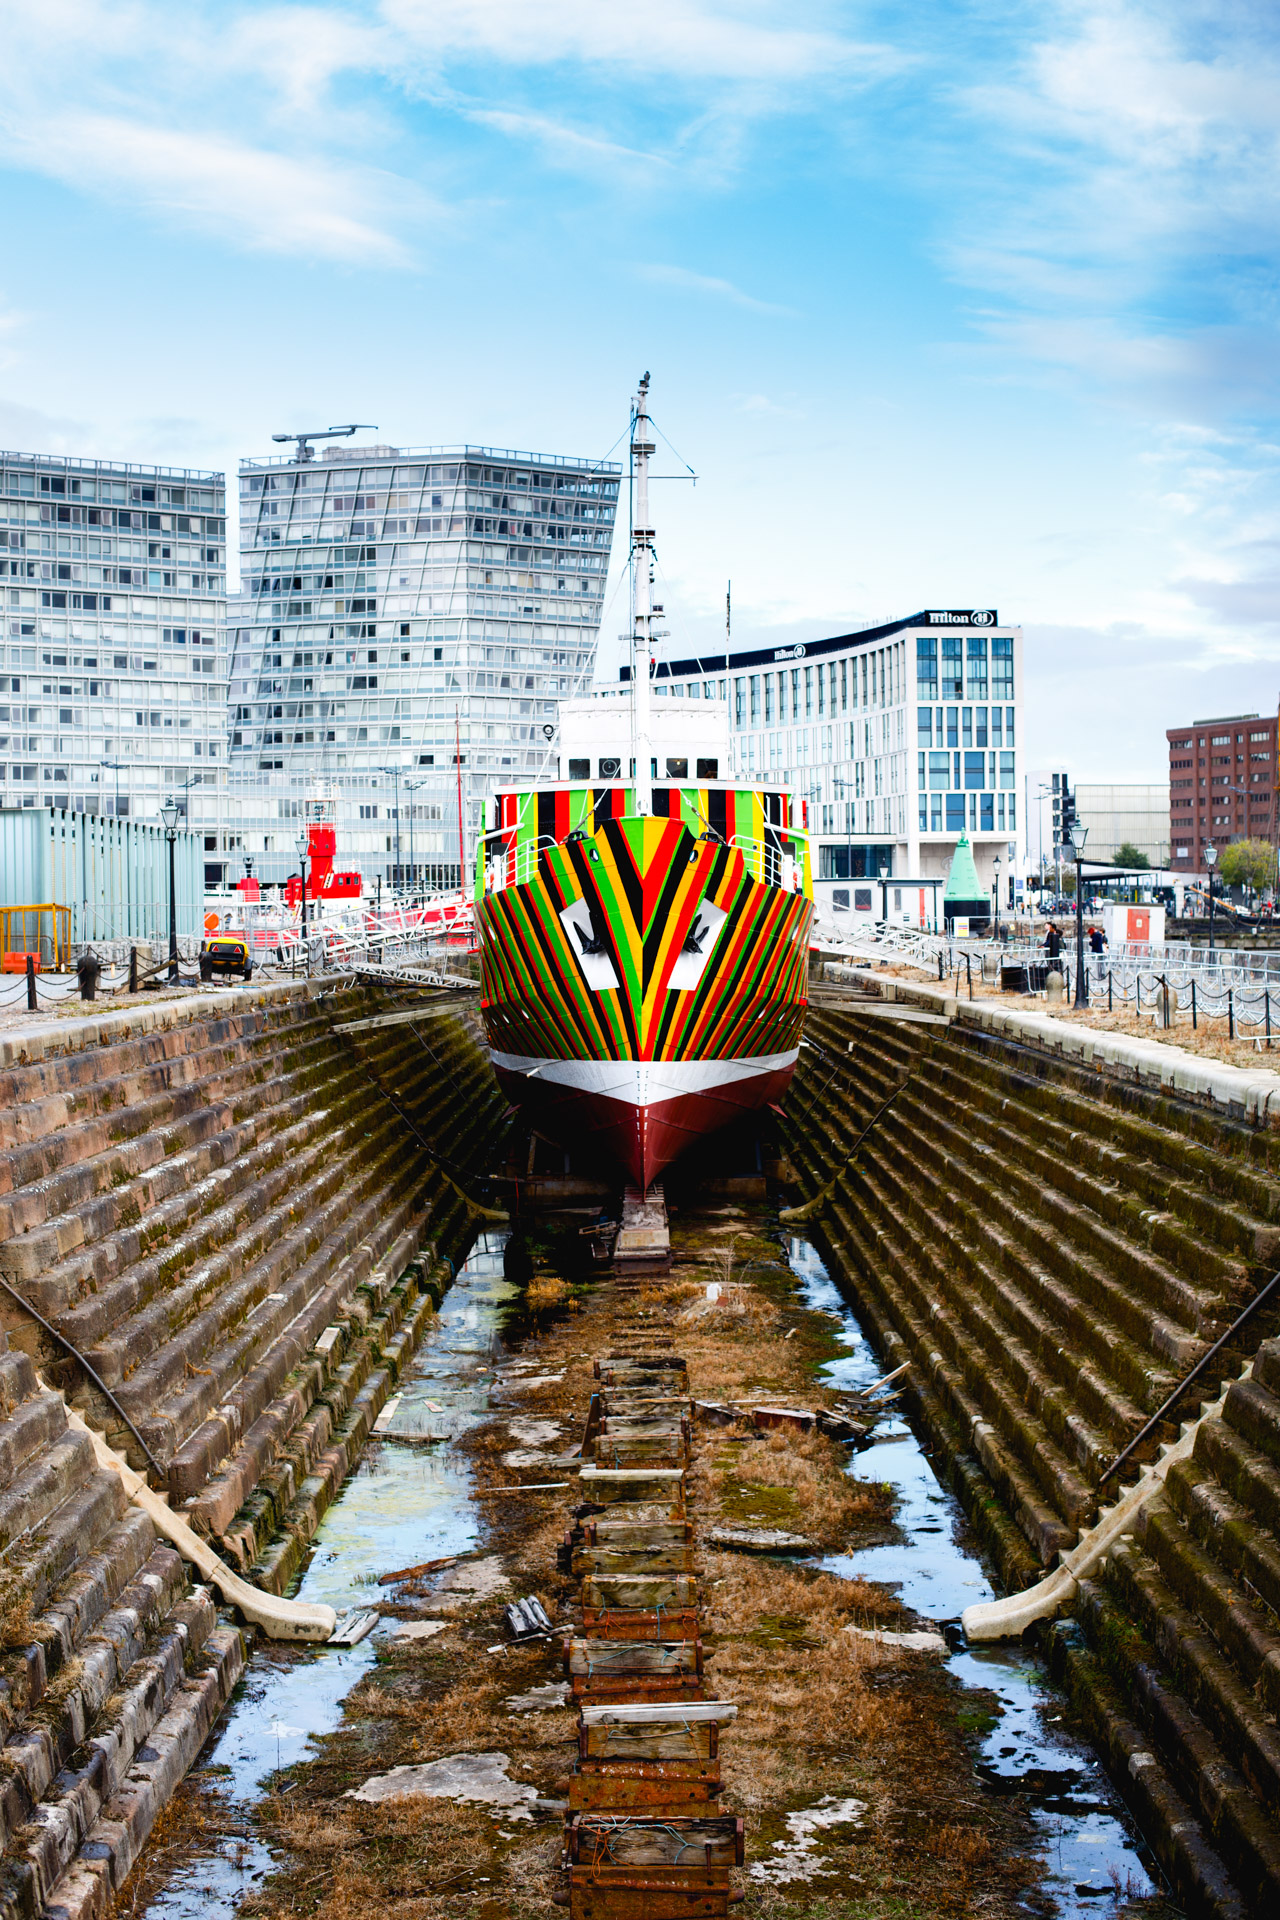 In October I finally got round to checking out some of the Liverpool Biennial artwork. This was taken in the Albert Docks and was called the Dazzle Ship.